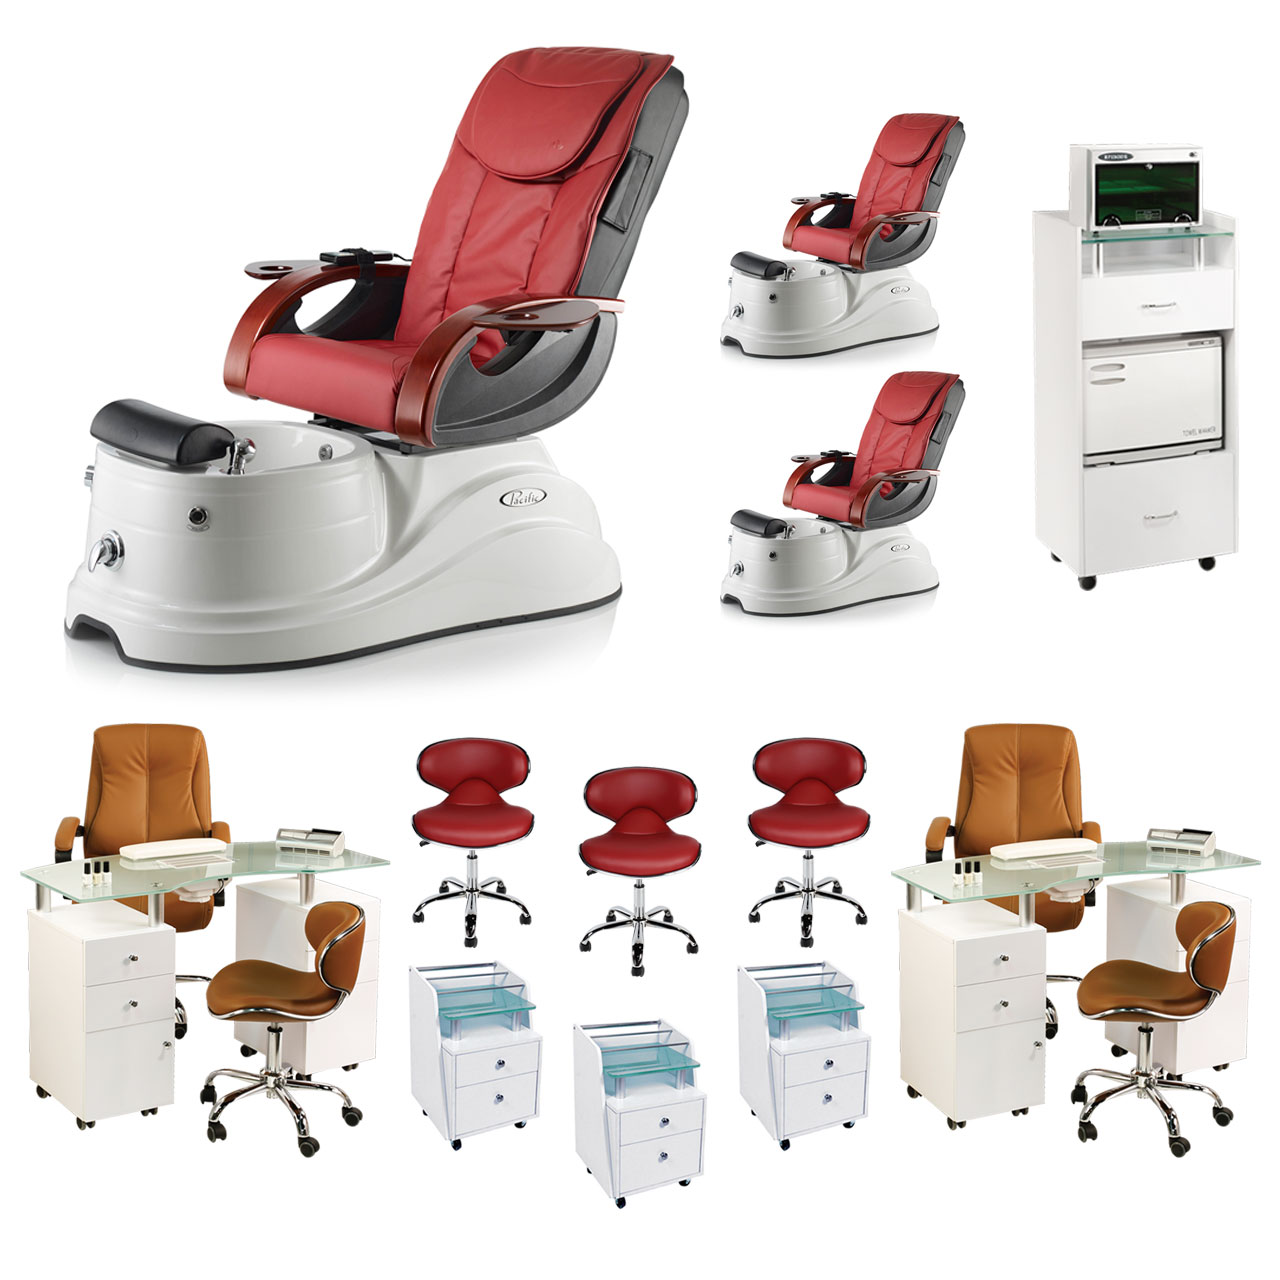 Red 3 Pacific AX Luxury Nail Salon Furniture Package With 2 Manicure Stations  main product image